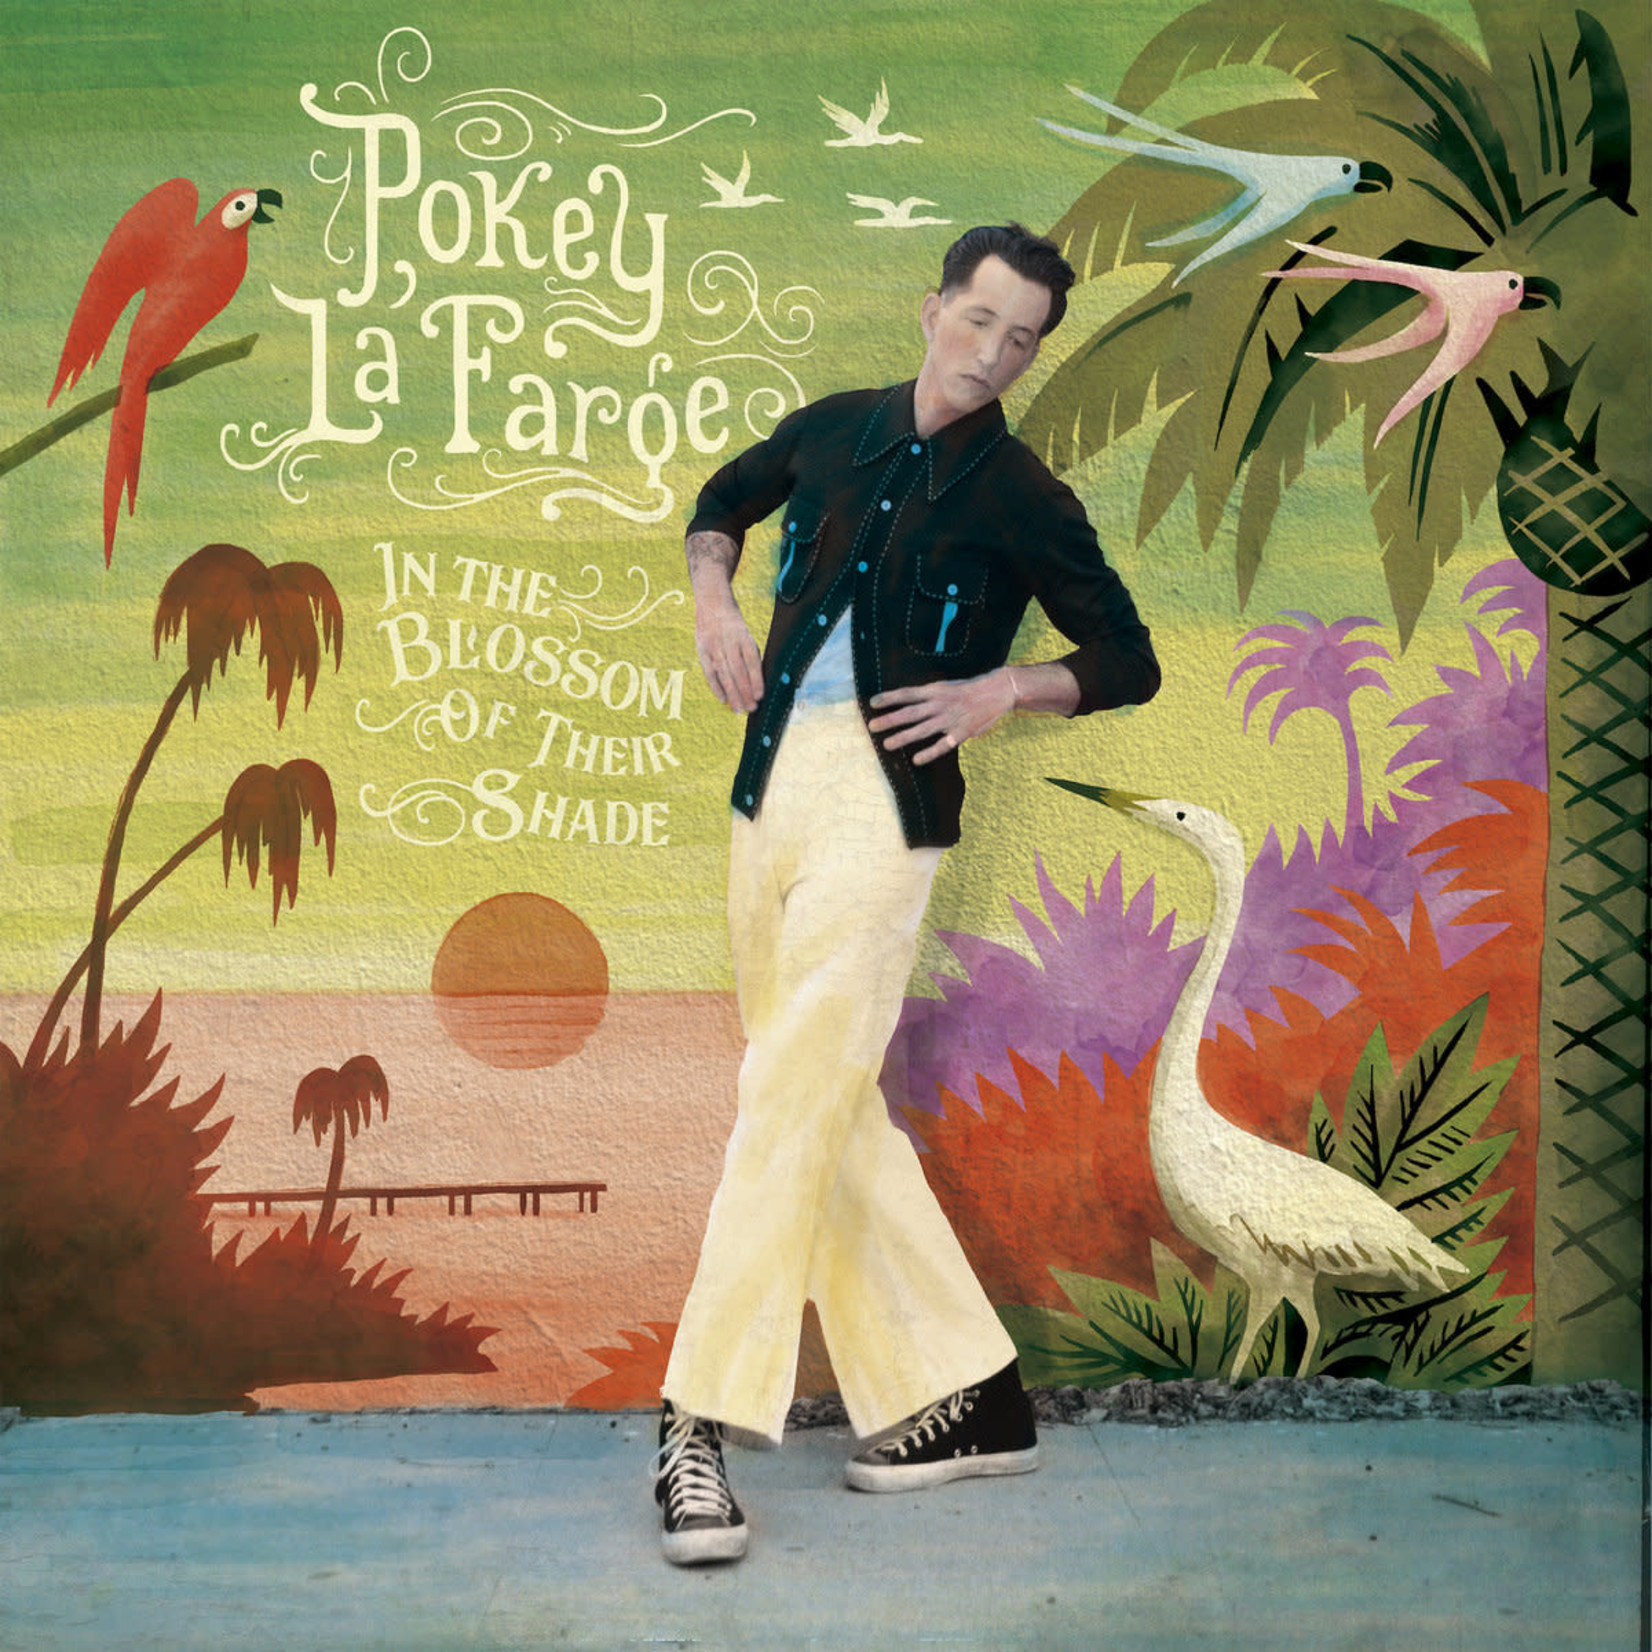 Pokey Lafarge - In The Blossom Of Their Shade (Indie Vinyl)